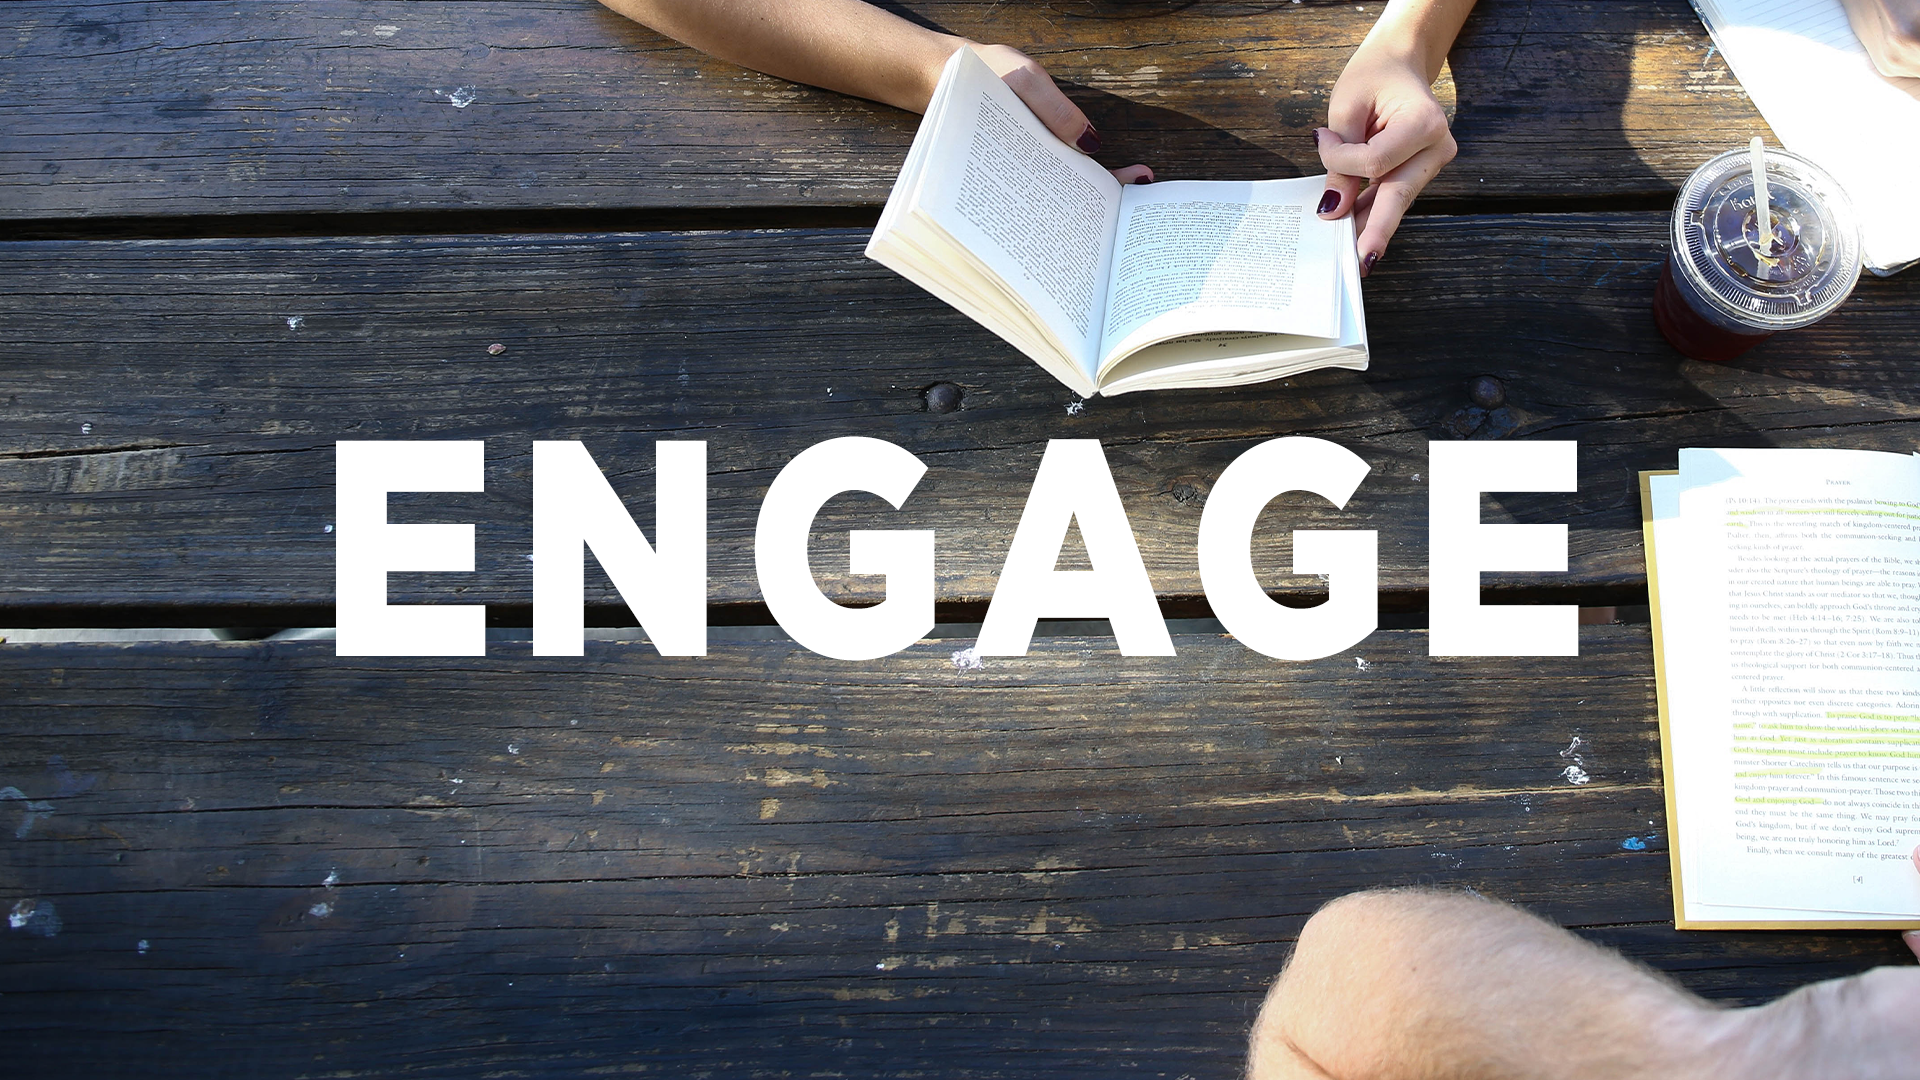 - Engage people in everyday life who need to know Jesus